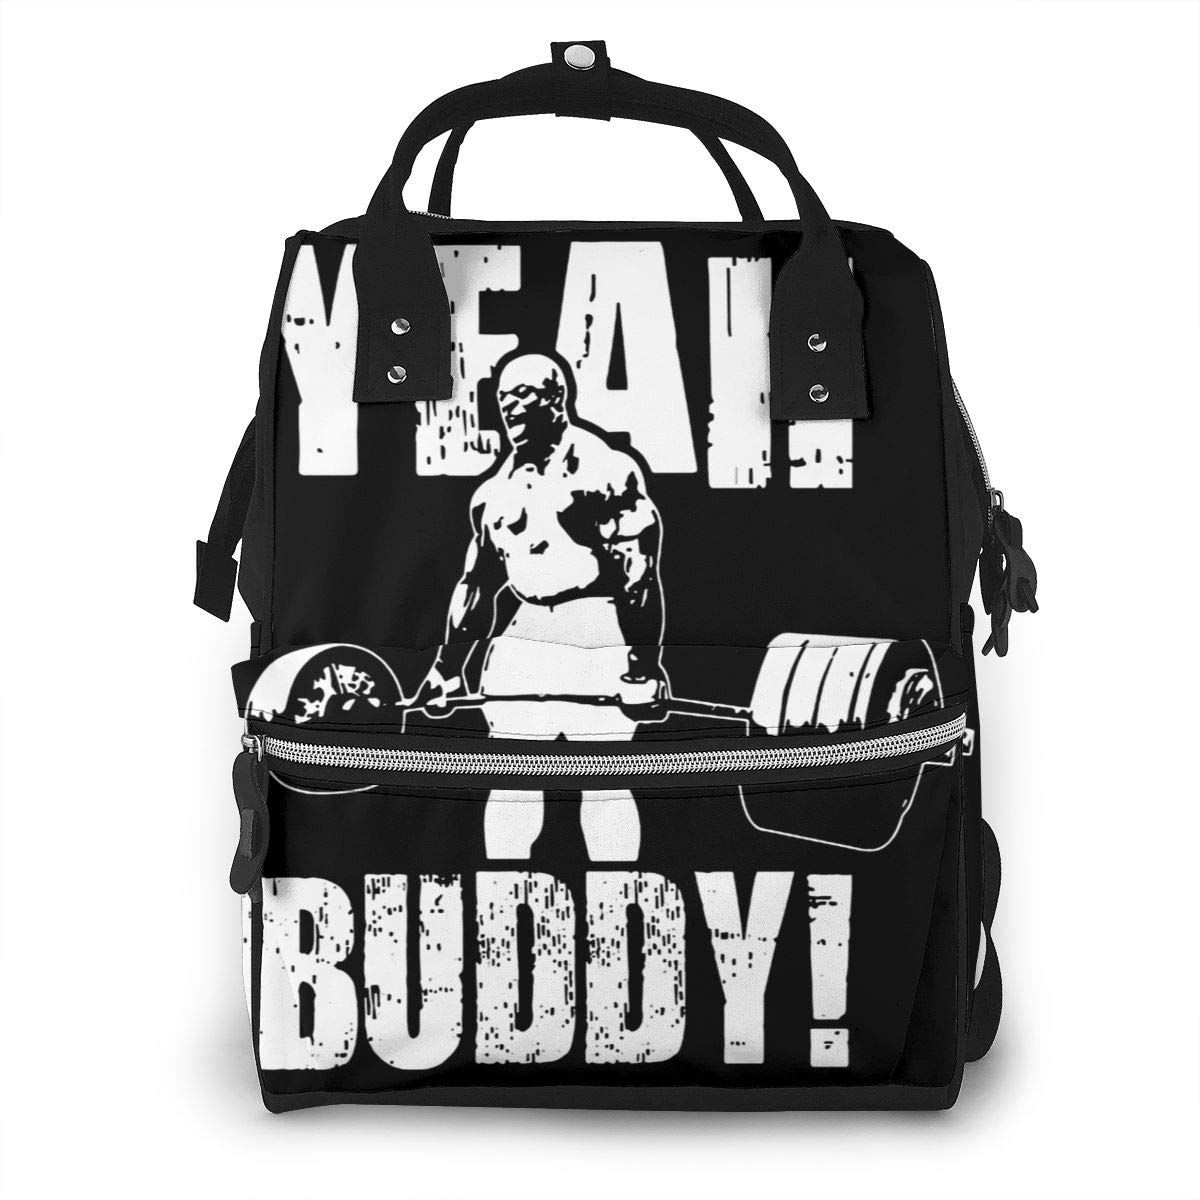 Yeah Buddy - Ronnie Coleman - 62 Personalized Design, Durable, Large Capacity, Stylish, Adjustable Strap Length.